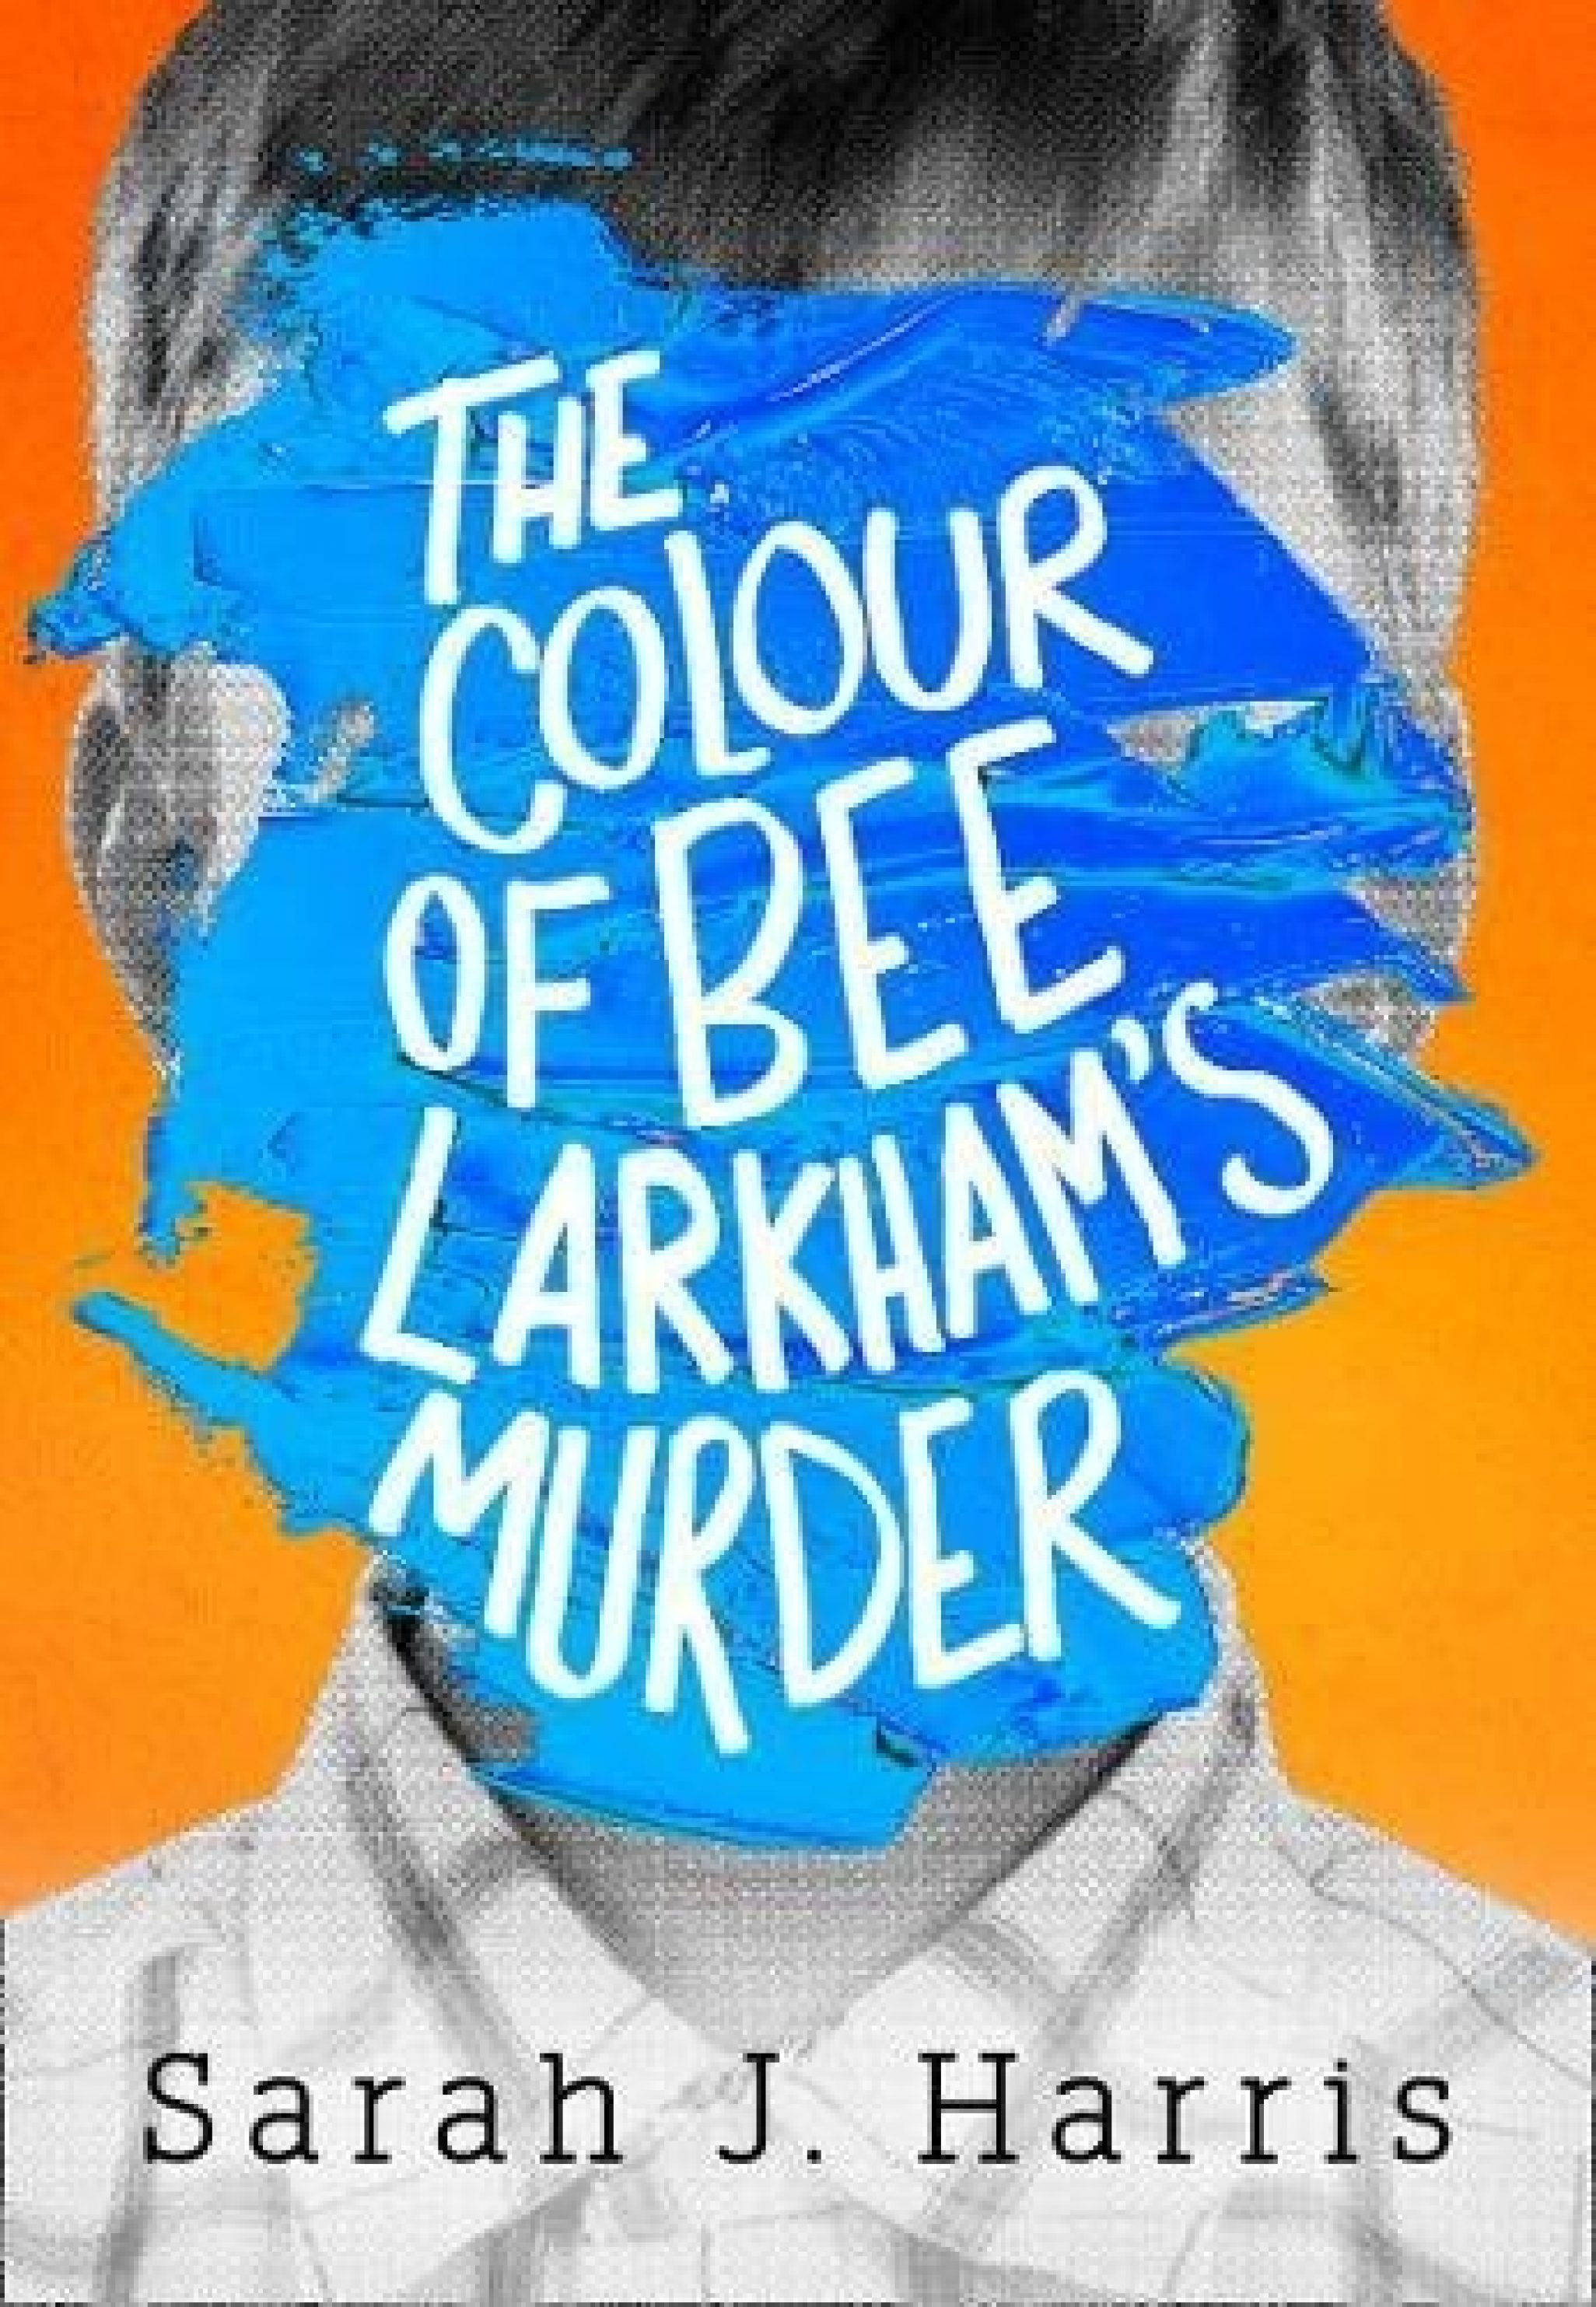 An Introduction to The Colour of Bee Larkham's Murder by Sarah J Harris